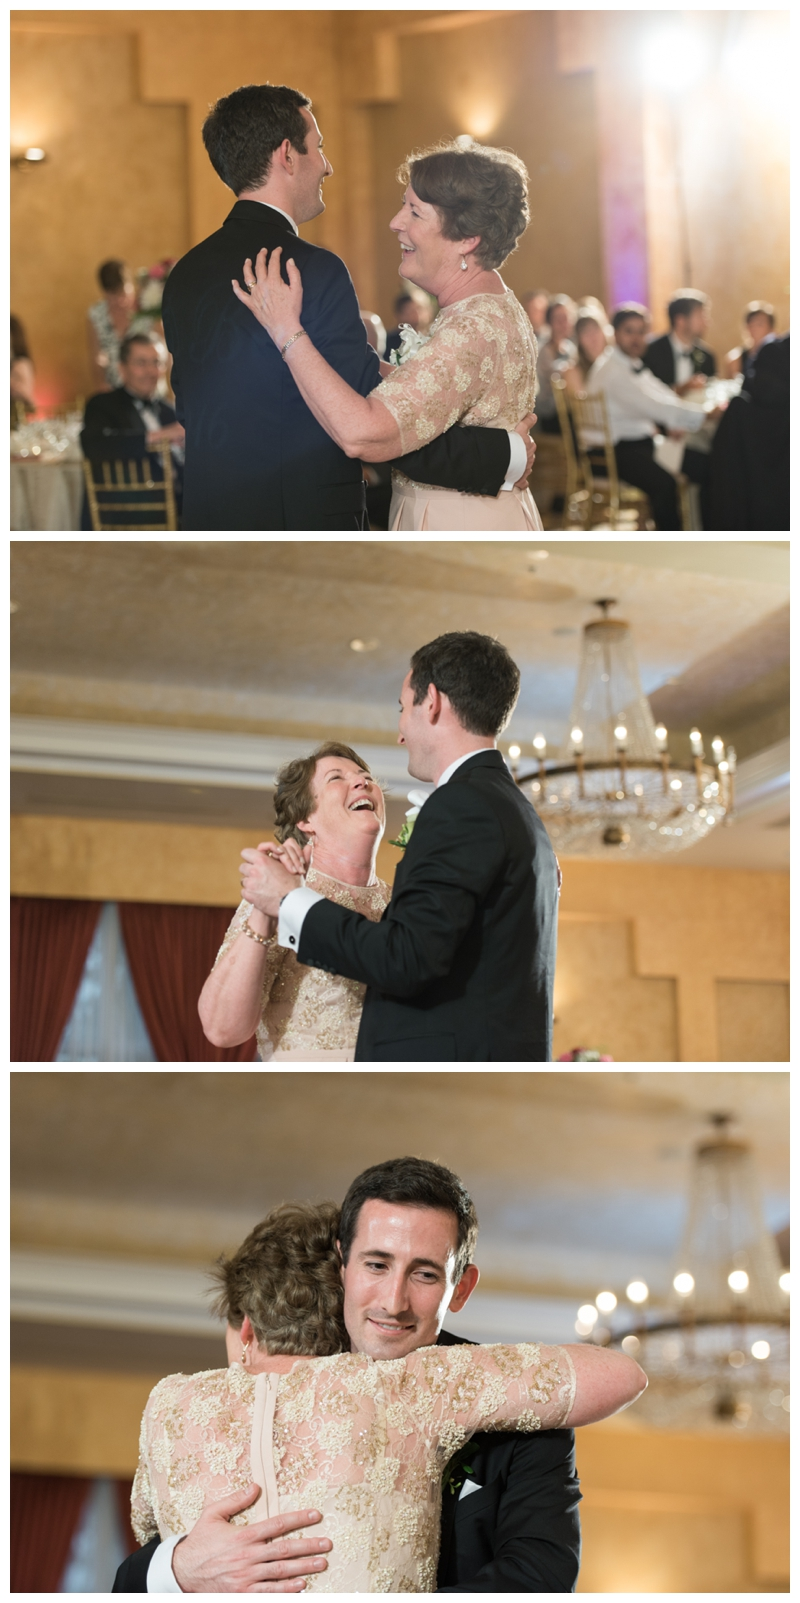 Wedding Reception at Fort Myer Officer's Club by Rachael Foster Photography_0089.jpg